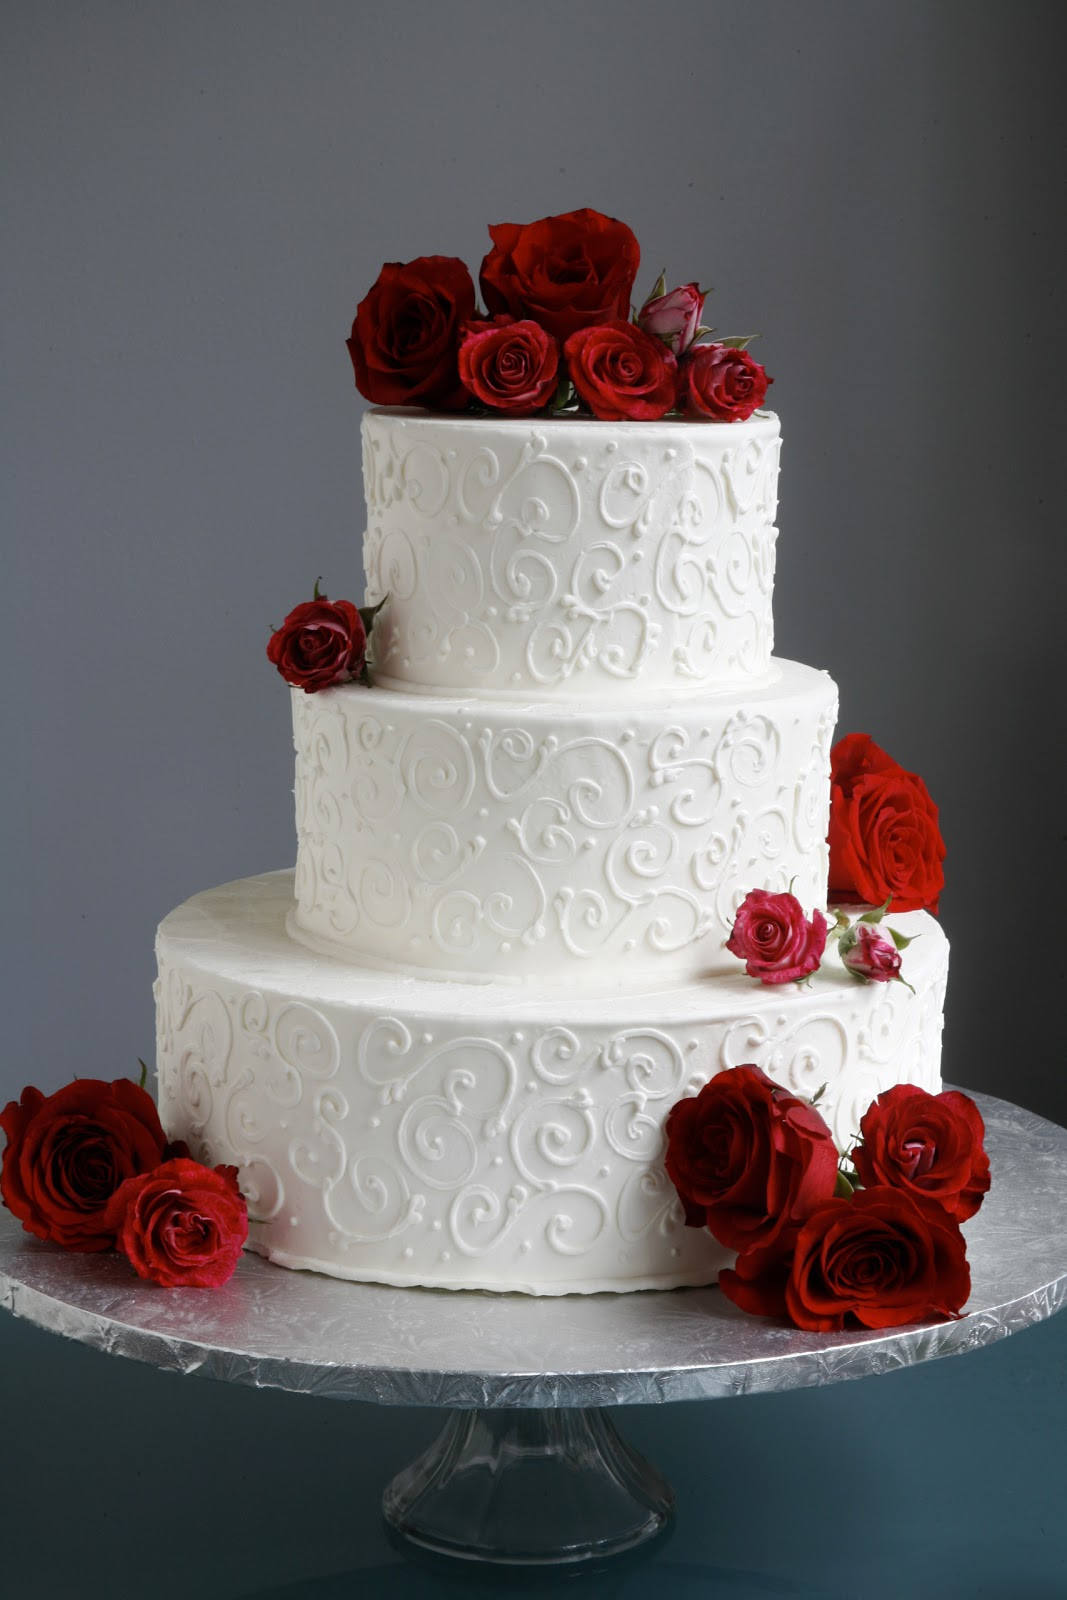 Simple Wedding Cakes With Flowers  A Simple Cake Wedding Cake with Fresh Flowers From